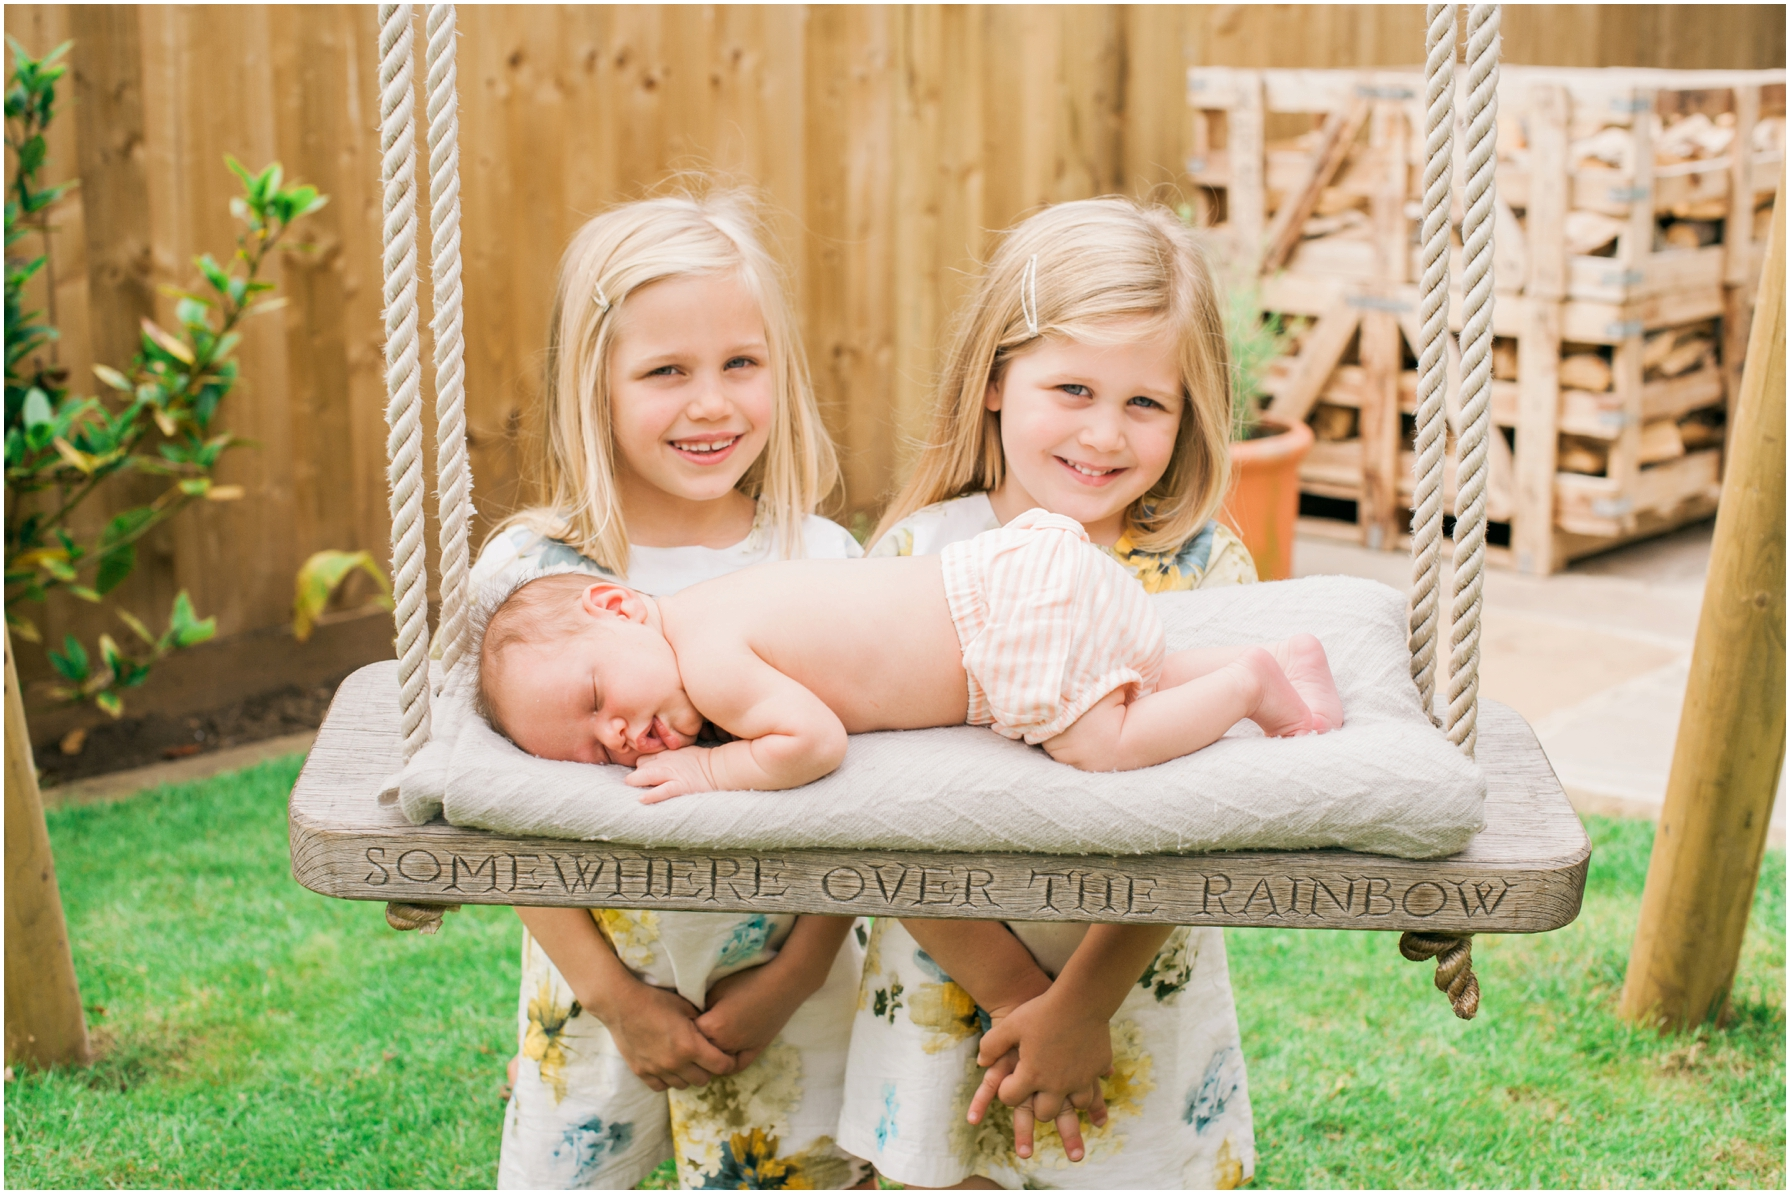 two little girls pose next to their baby sister sleeping on a wooden swing